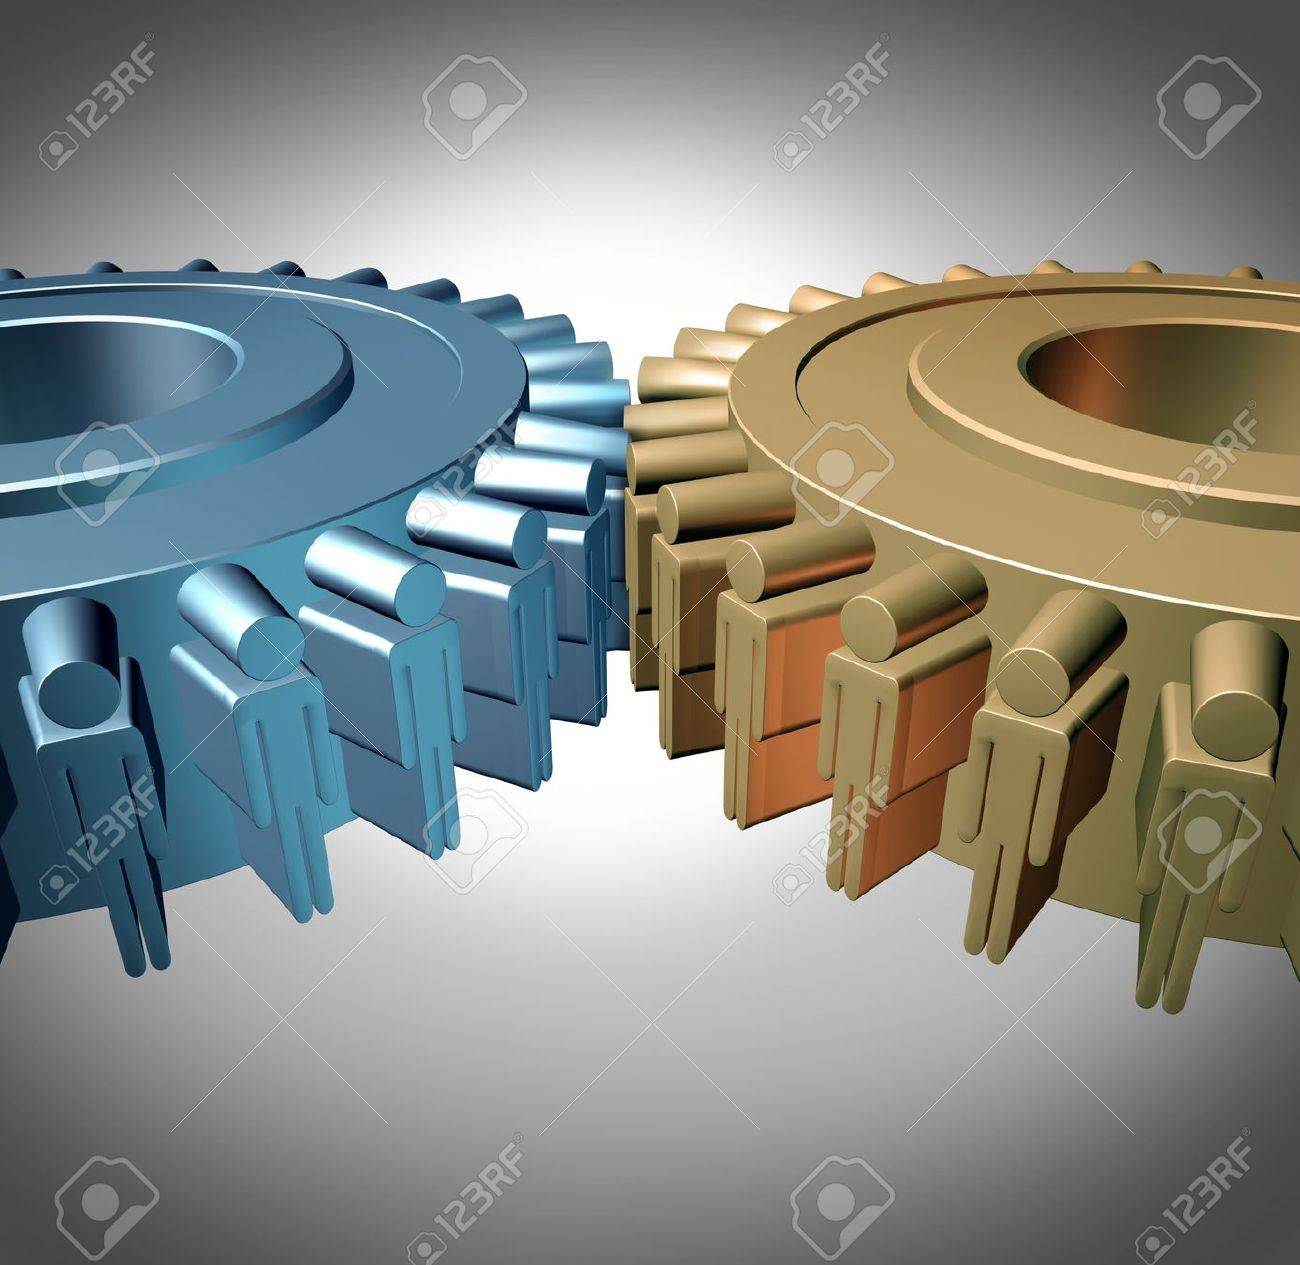 Business Teamwork concept with two merged gears or cog wheels shaped as business people icons in a meeting connected together as an organized working partnership for corporate strength and industry success Stock Photo - 20948382